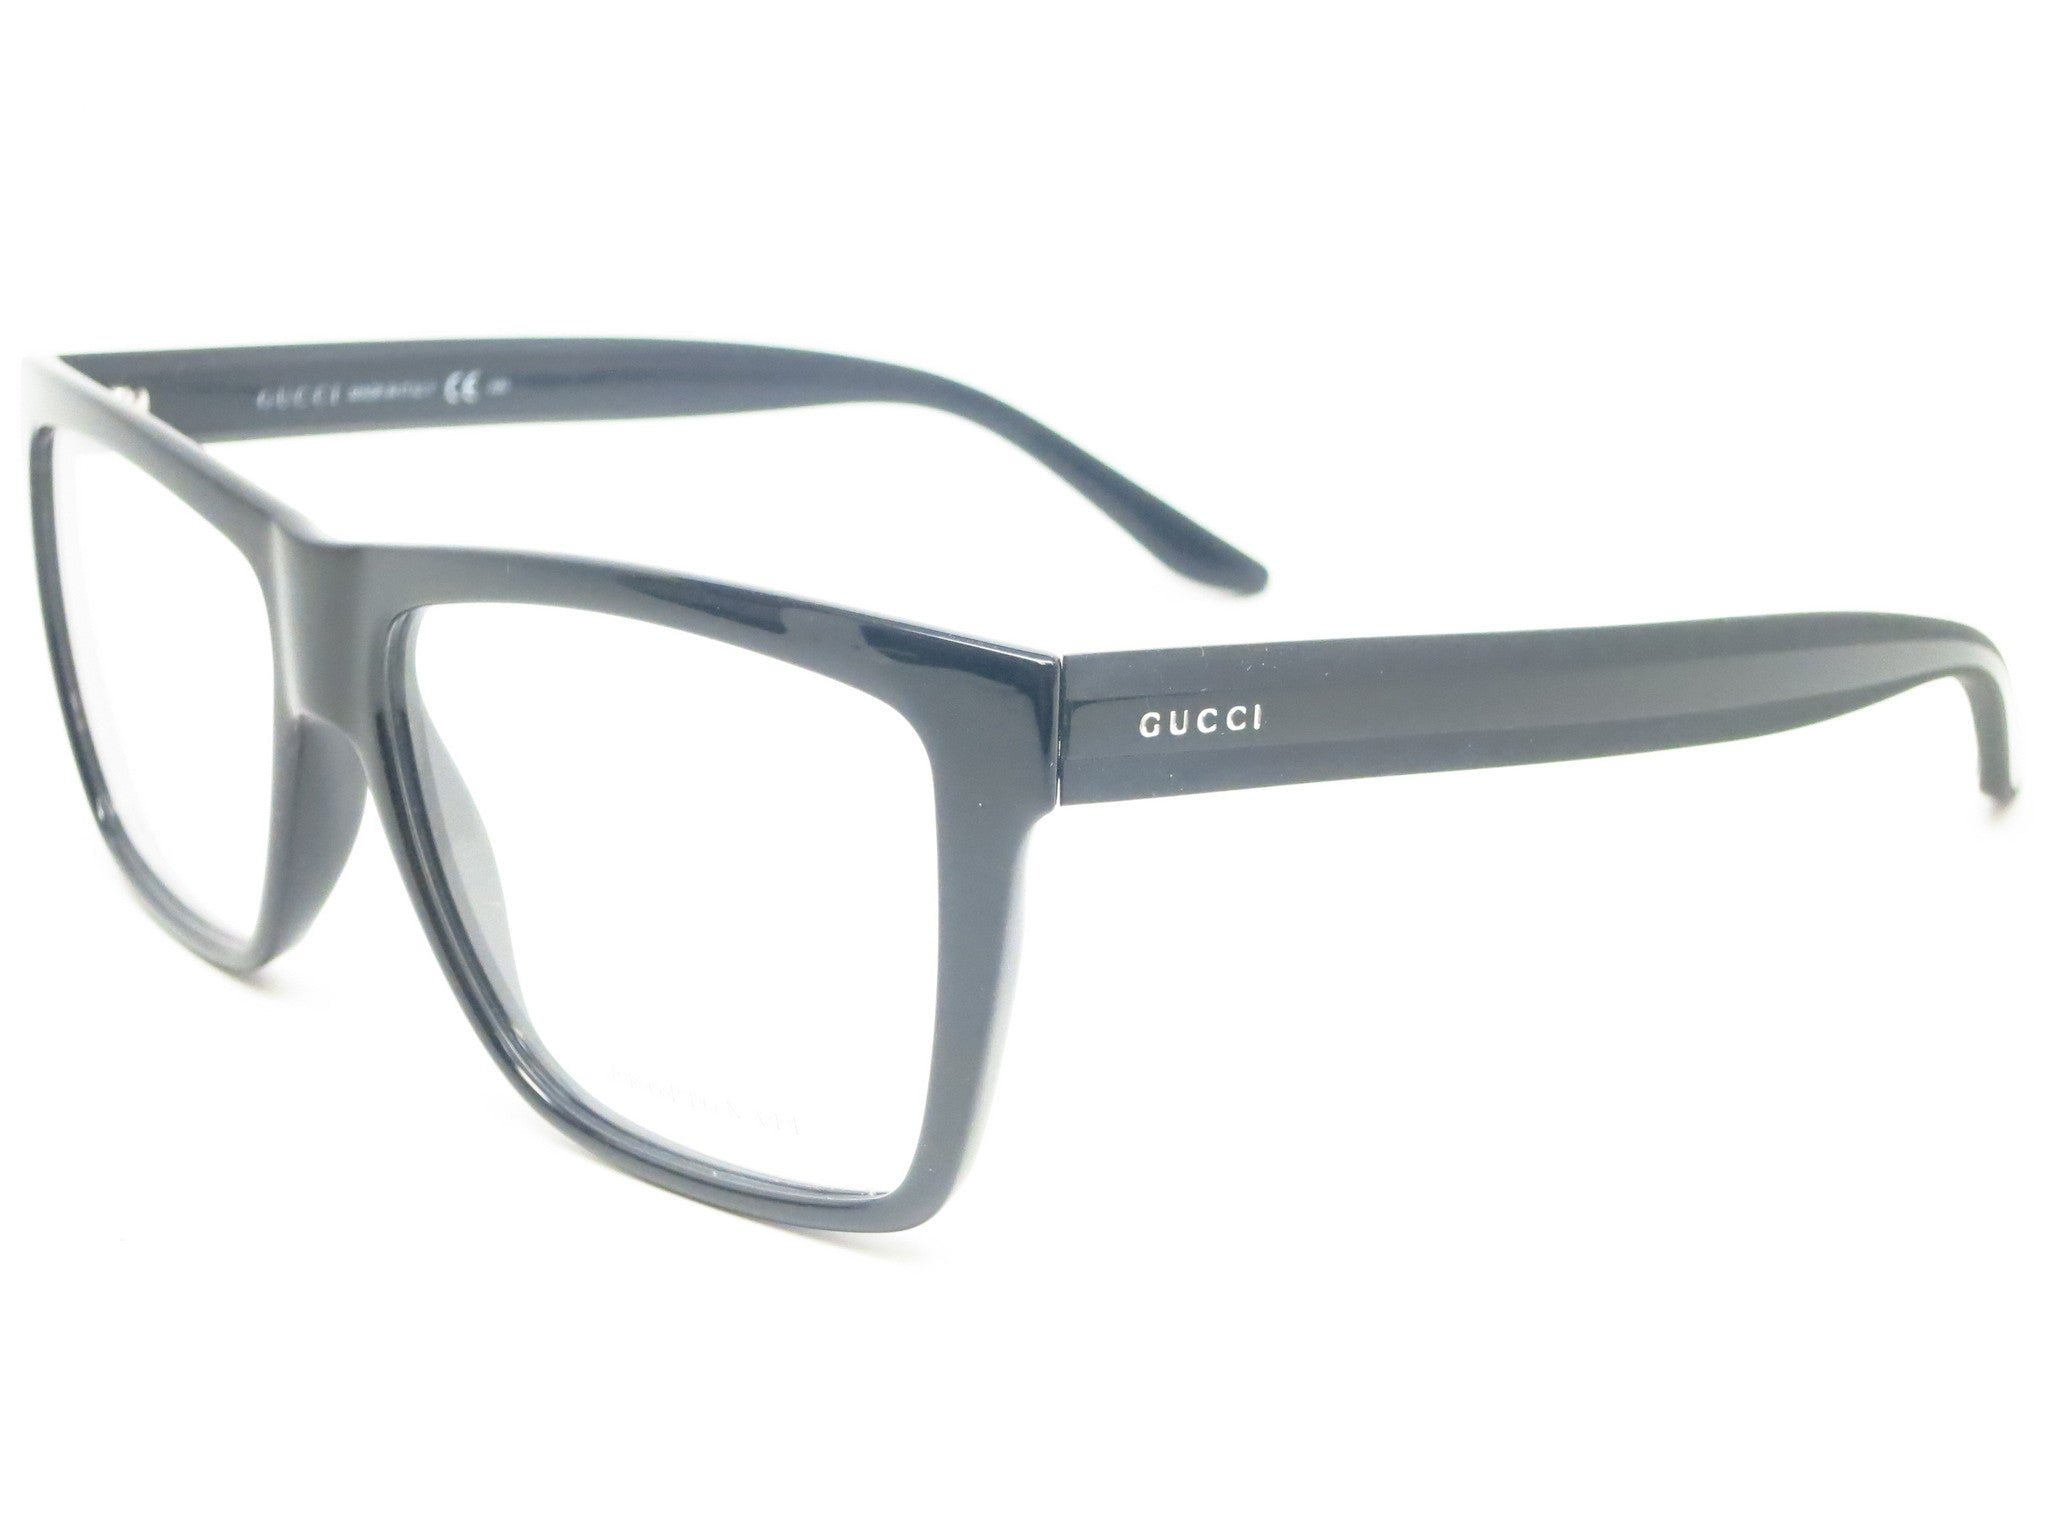 Gucci Eyeglasses & Sunglasses | Shop Mens & Womens Eyewear - Eye ...